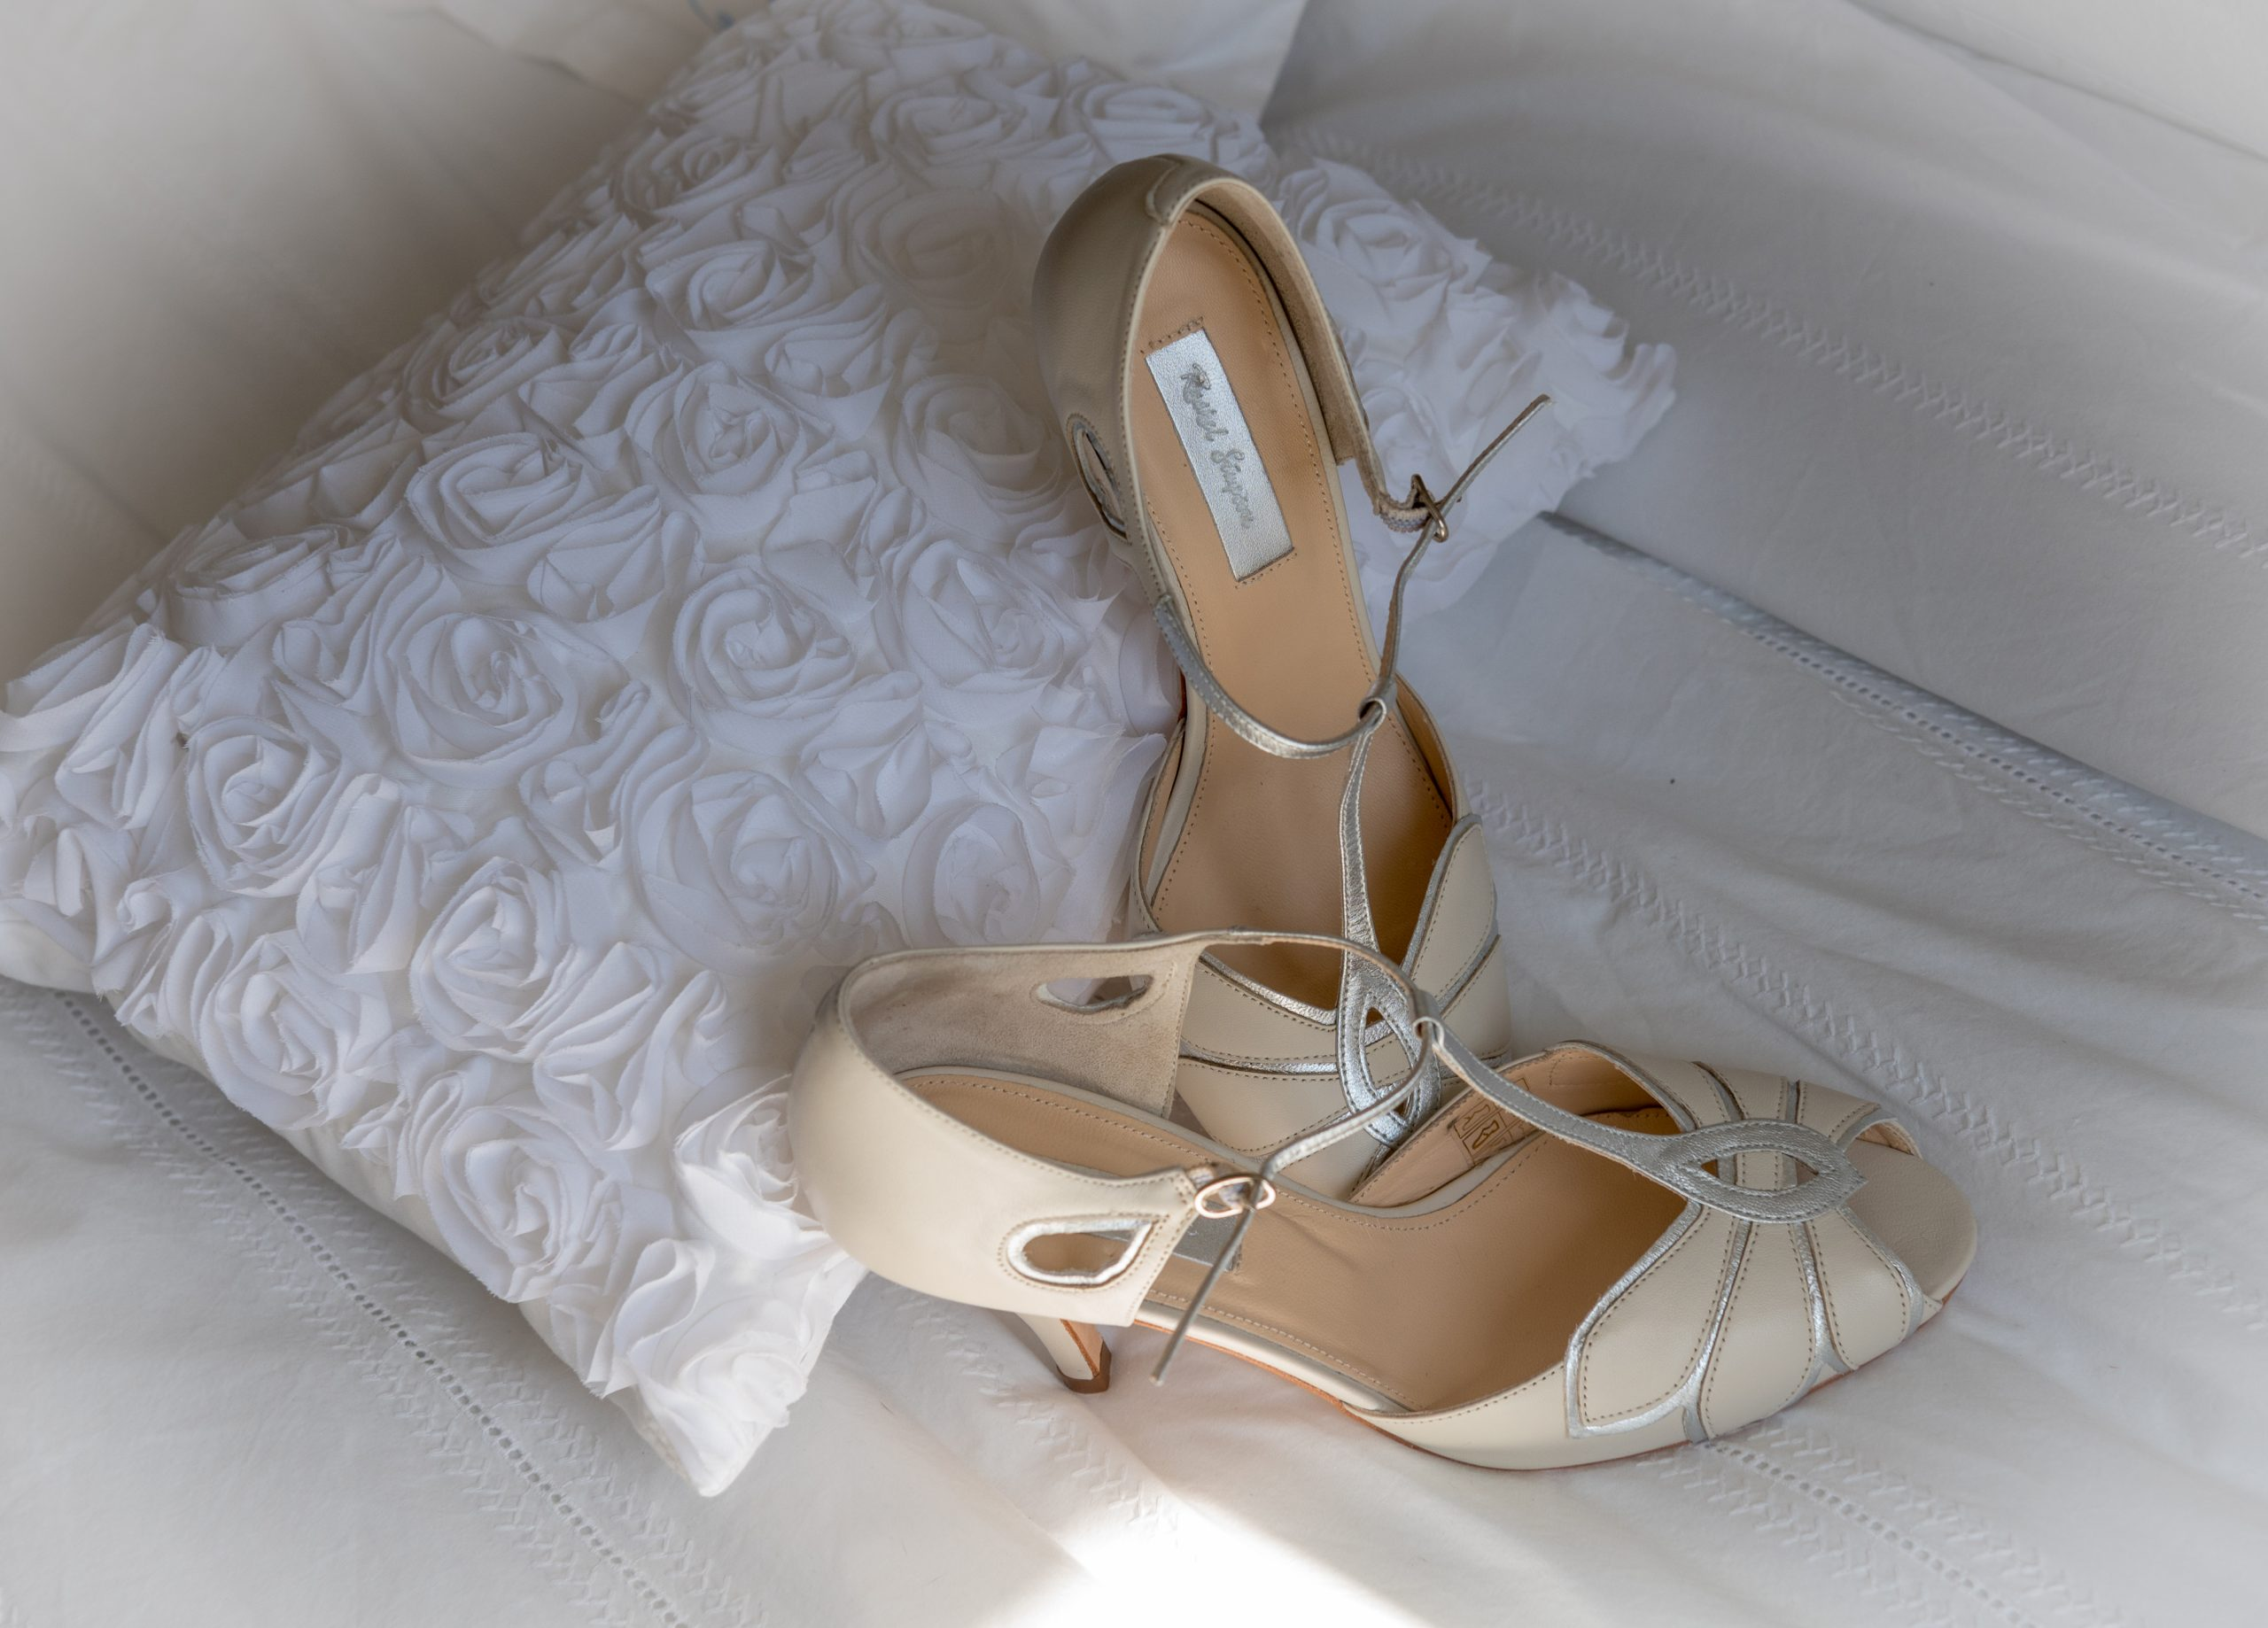 Things to make sure you capture for your bridal preparation photos